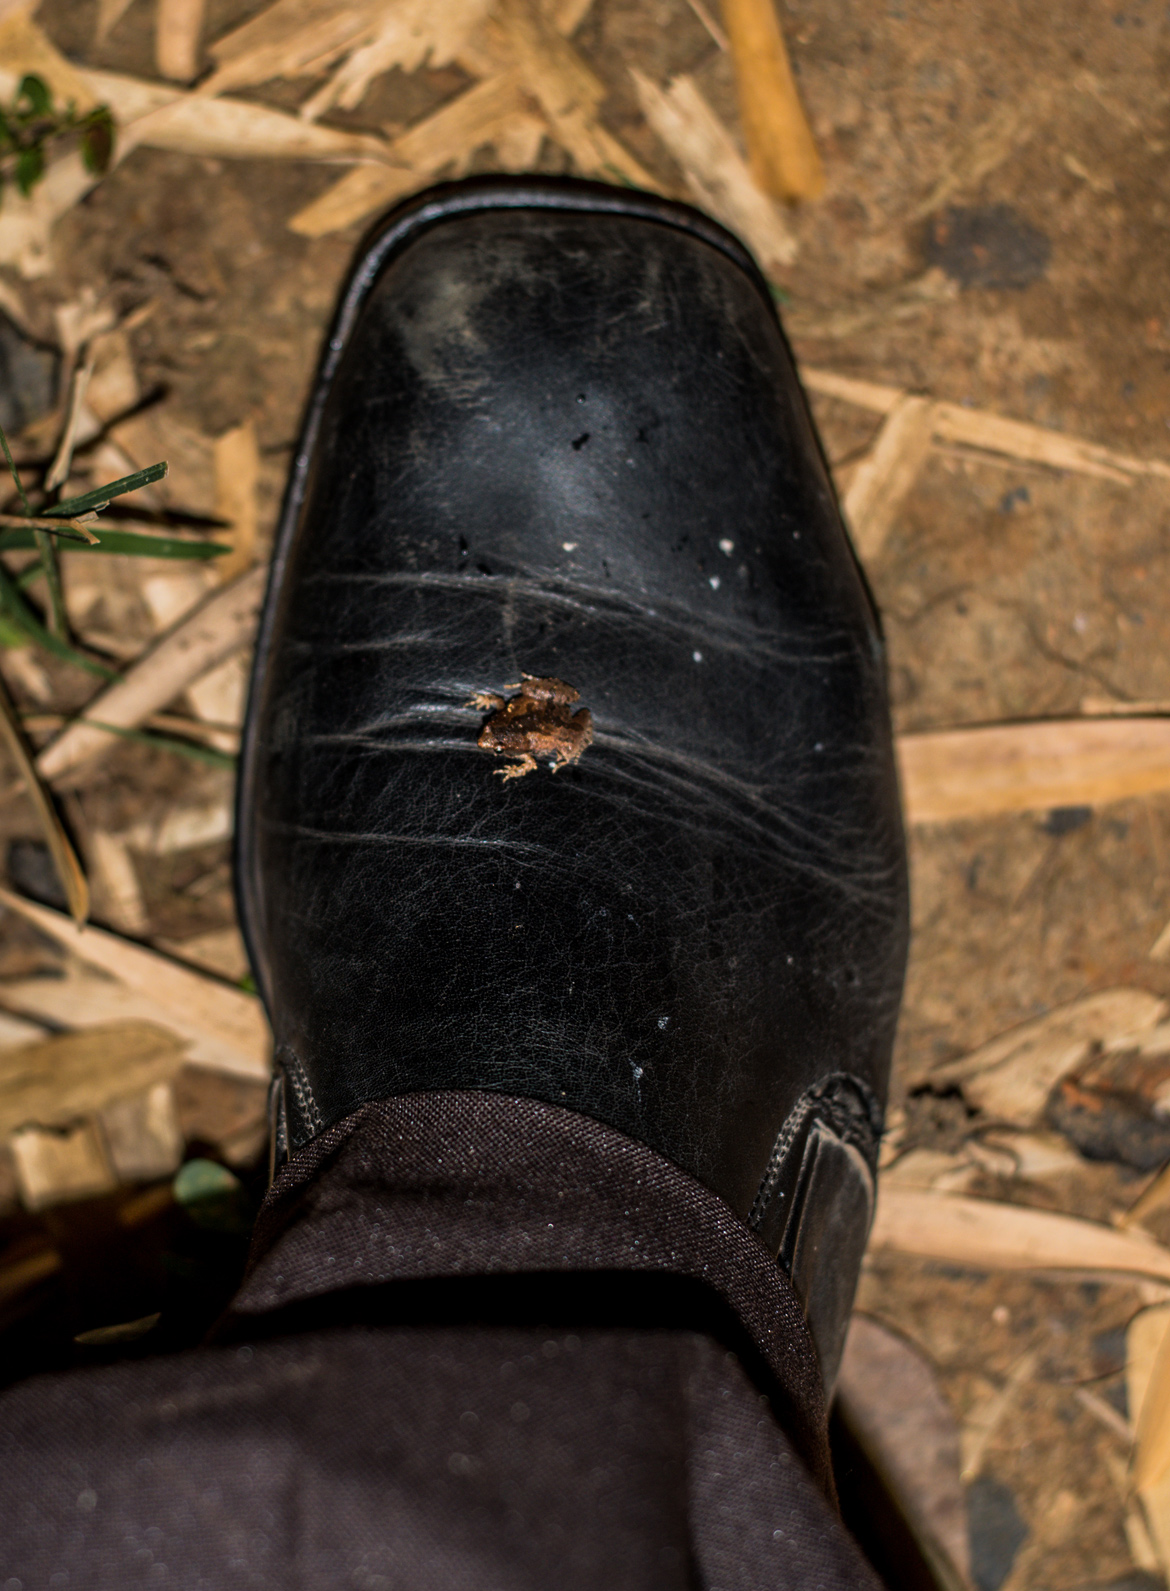 A tiny frog jumps onto the naturalist's shoe during a night walk in Bandhavgarh.